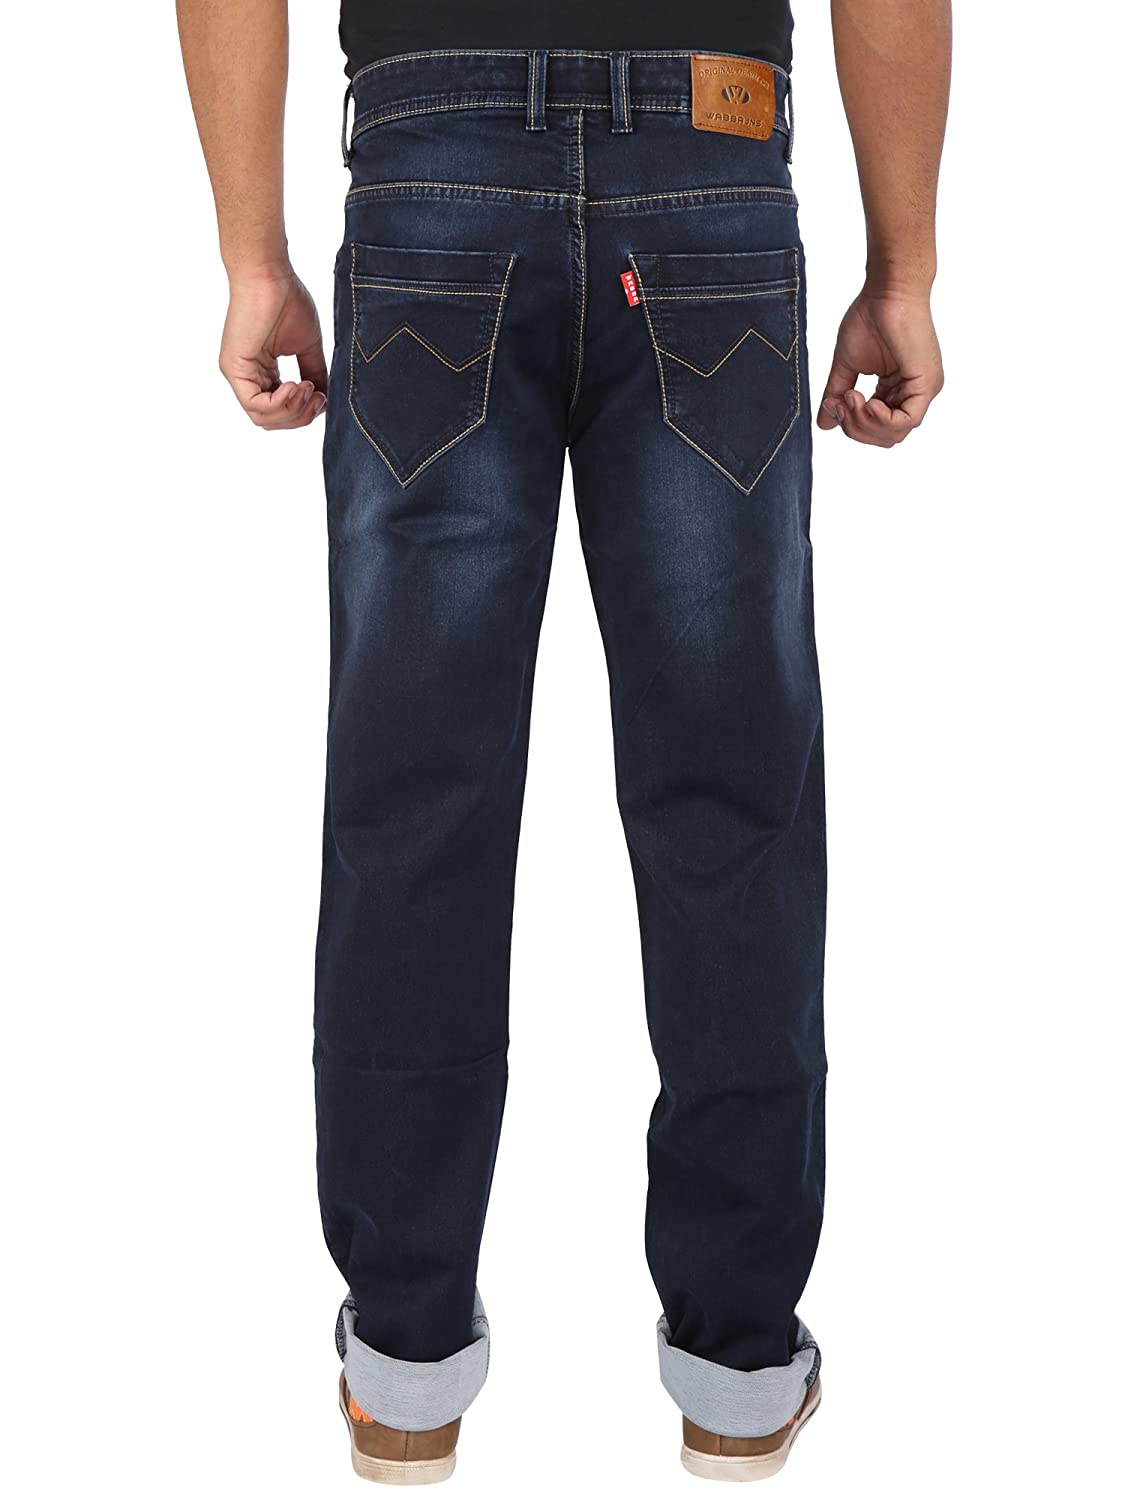 Wabba Mens Premium Knitted Stretch Slim Fit Jeans